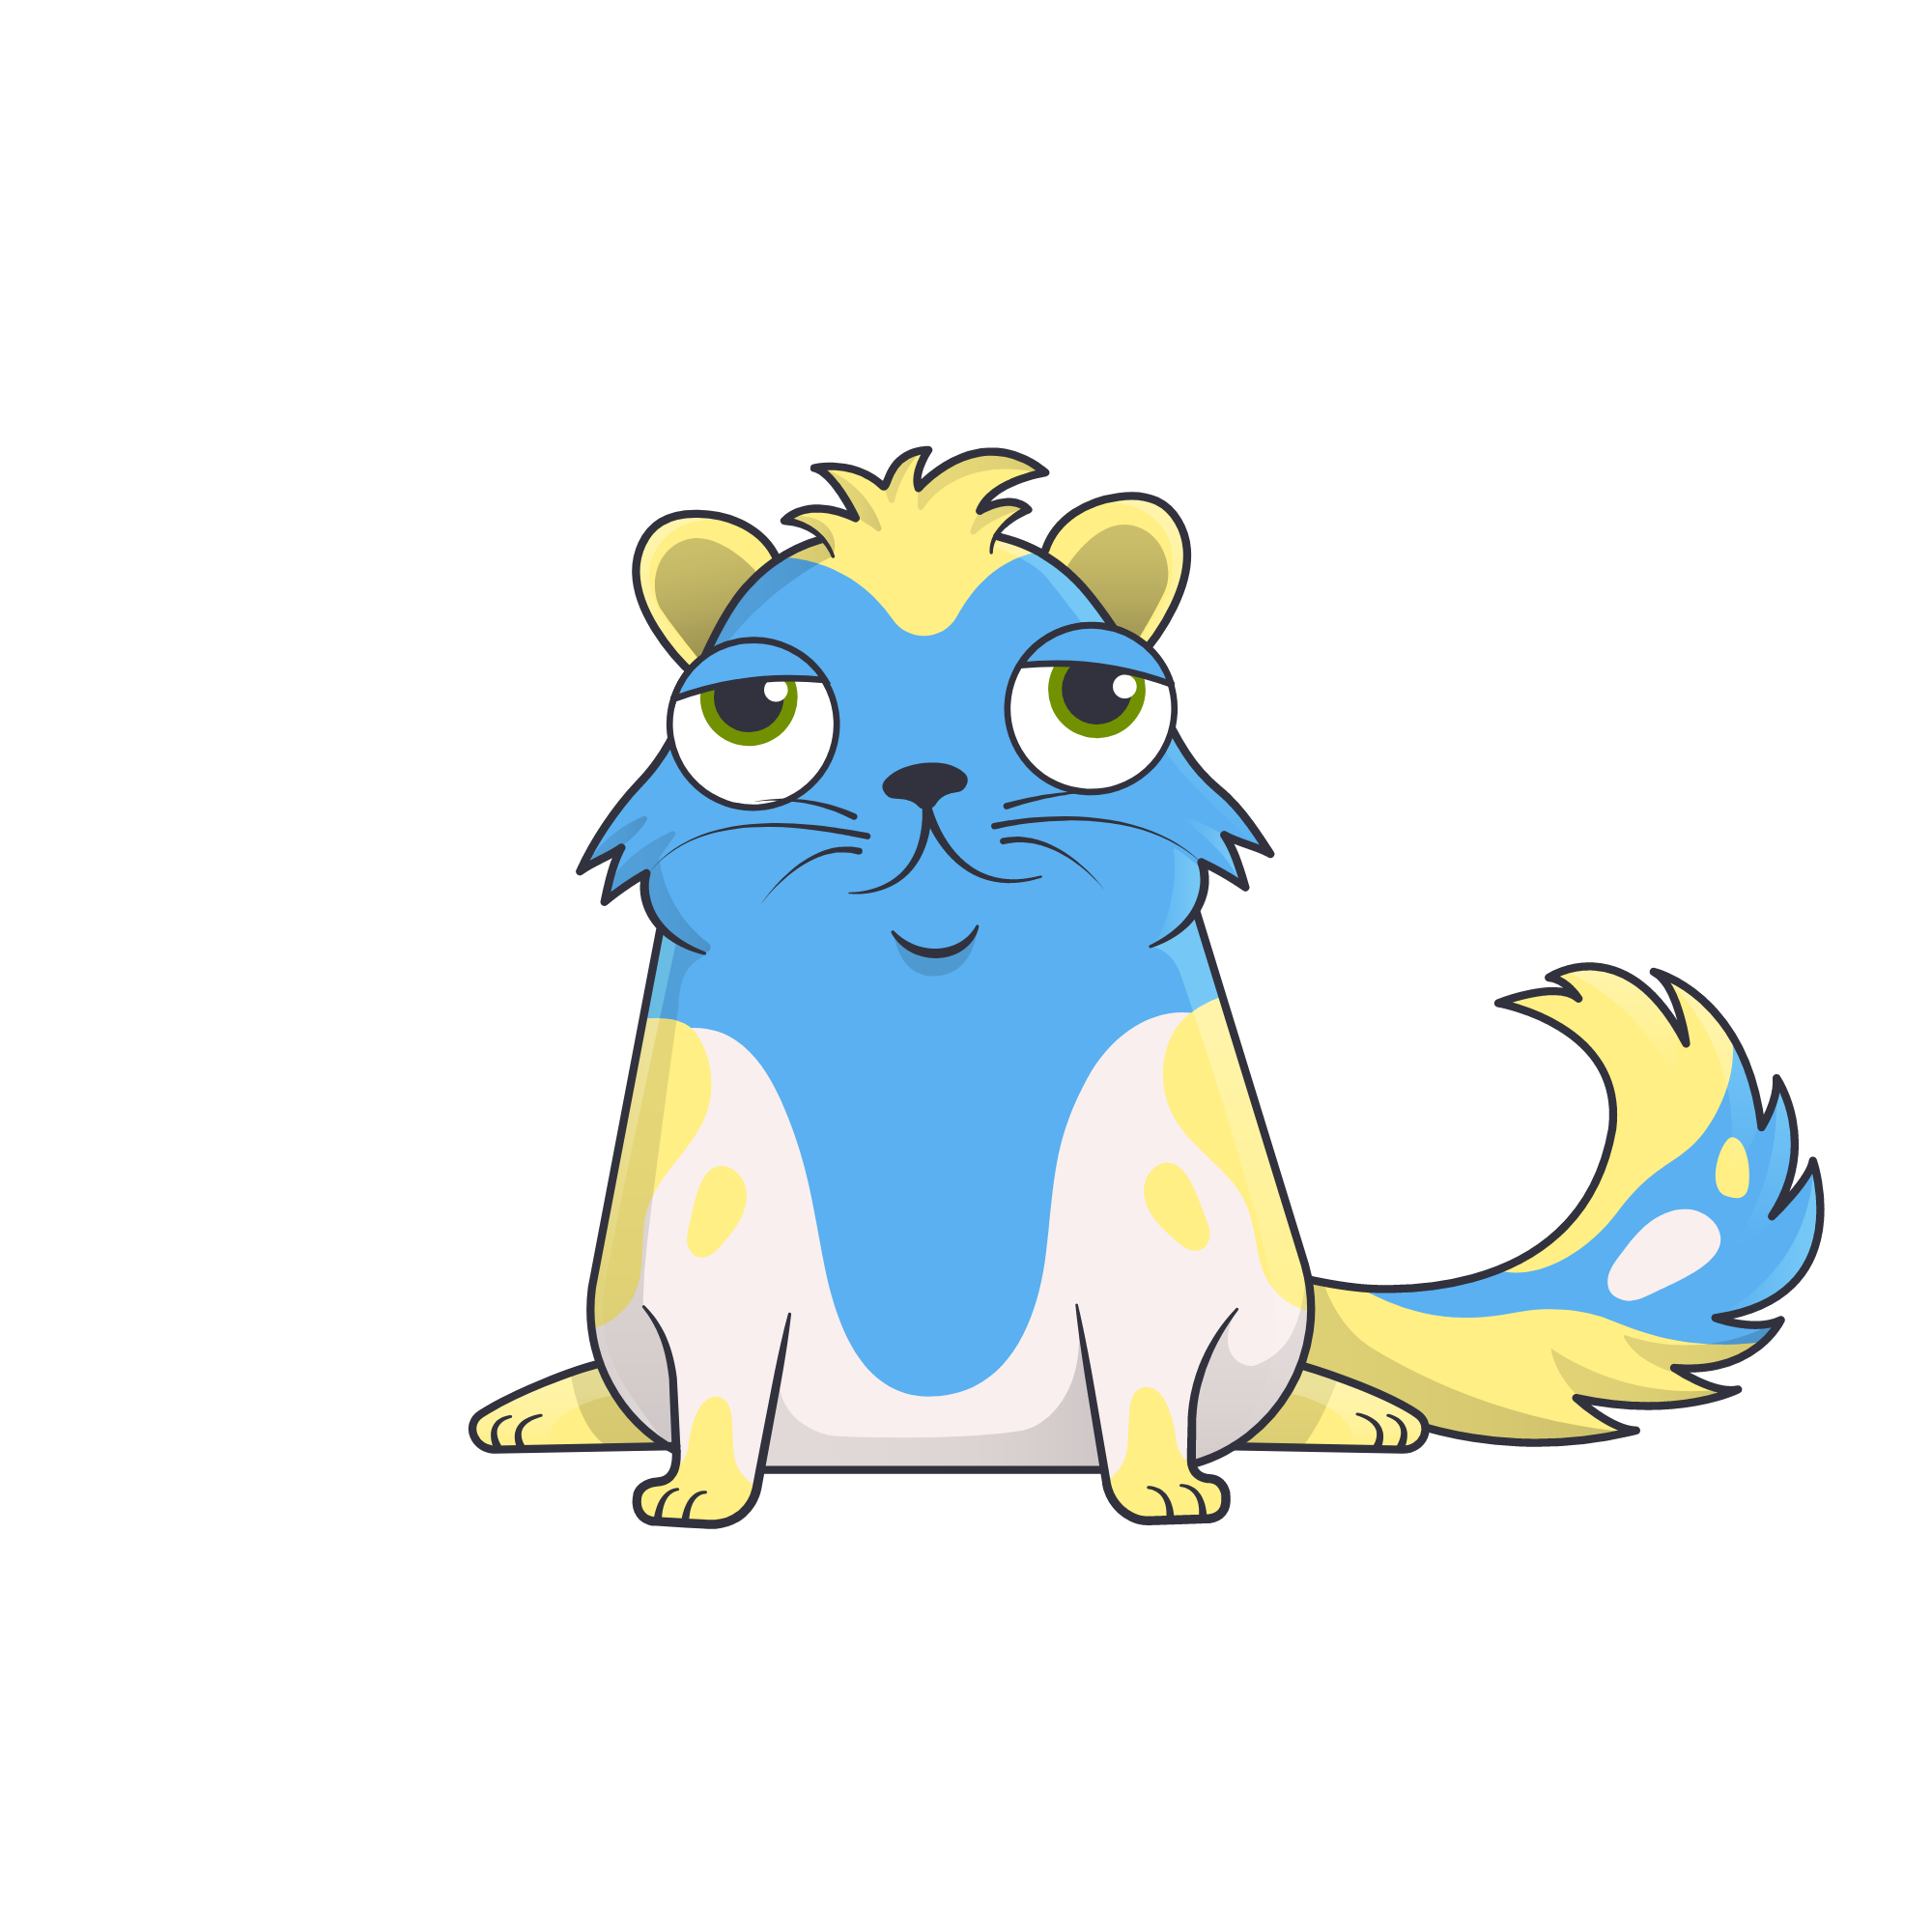 cryptokitty #1084677